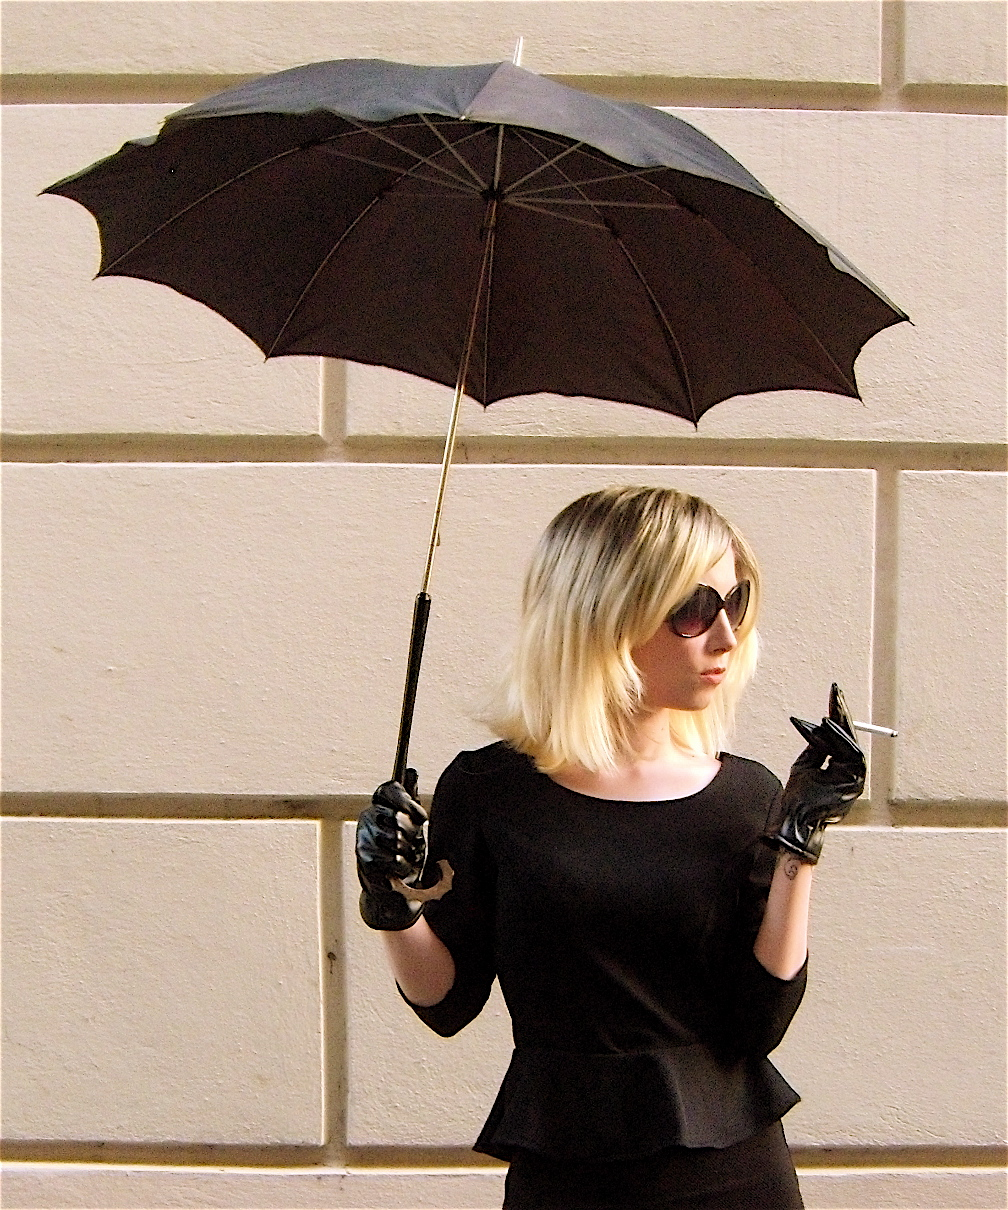 Fiona Goode - American horror story - Coven